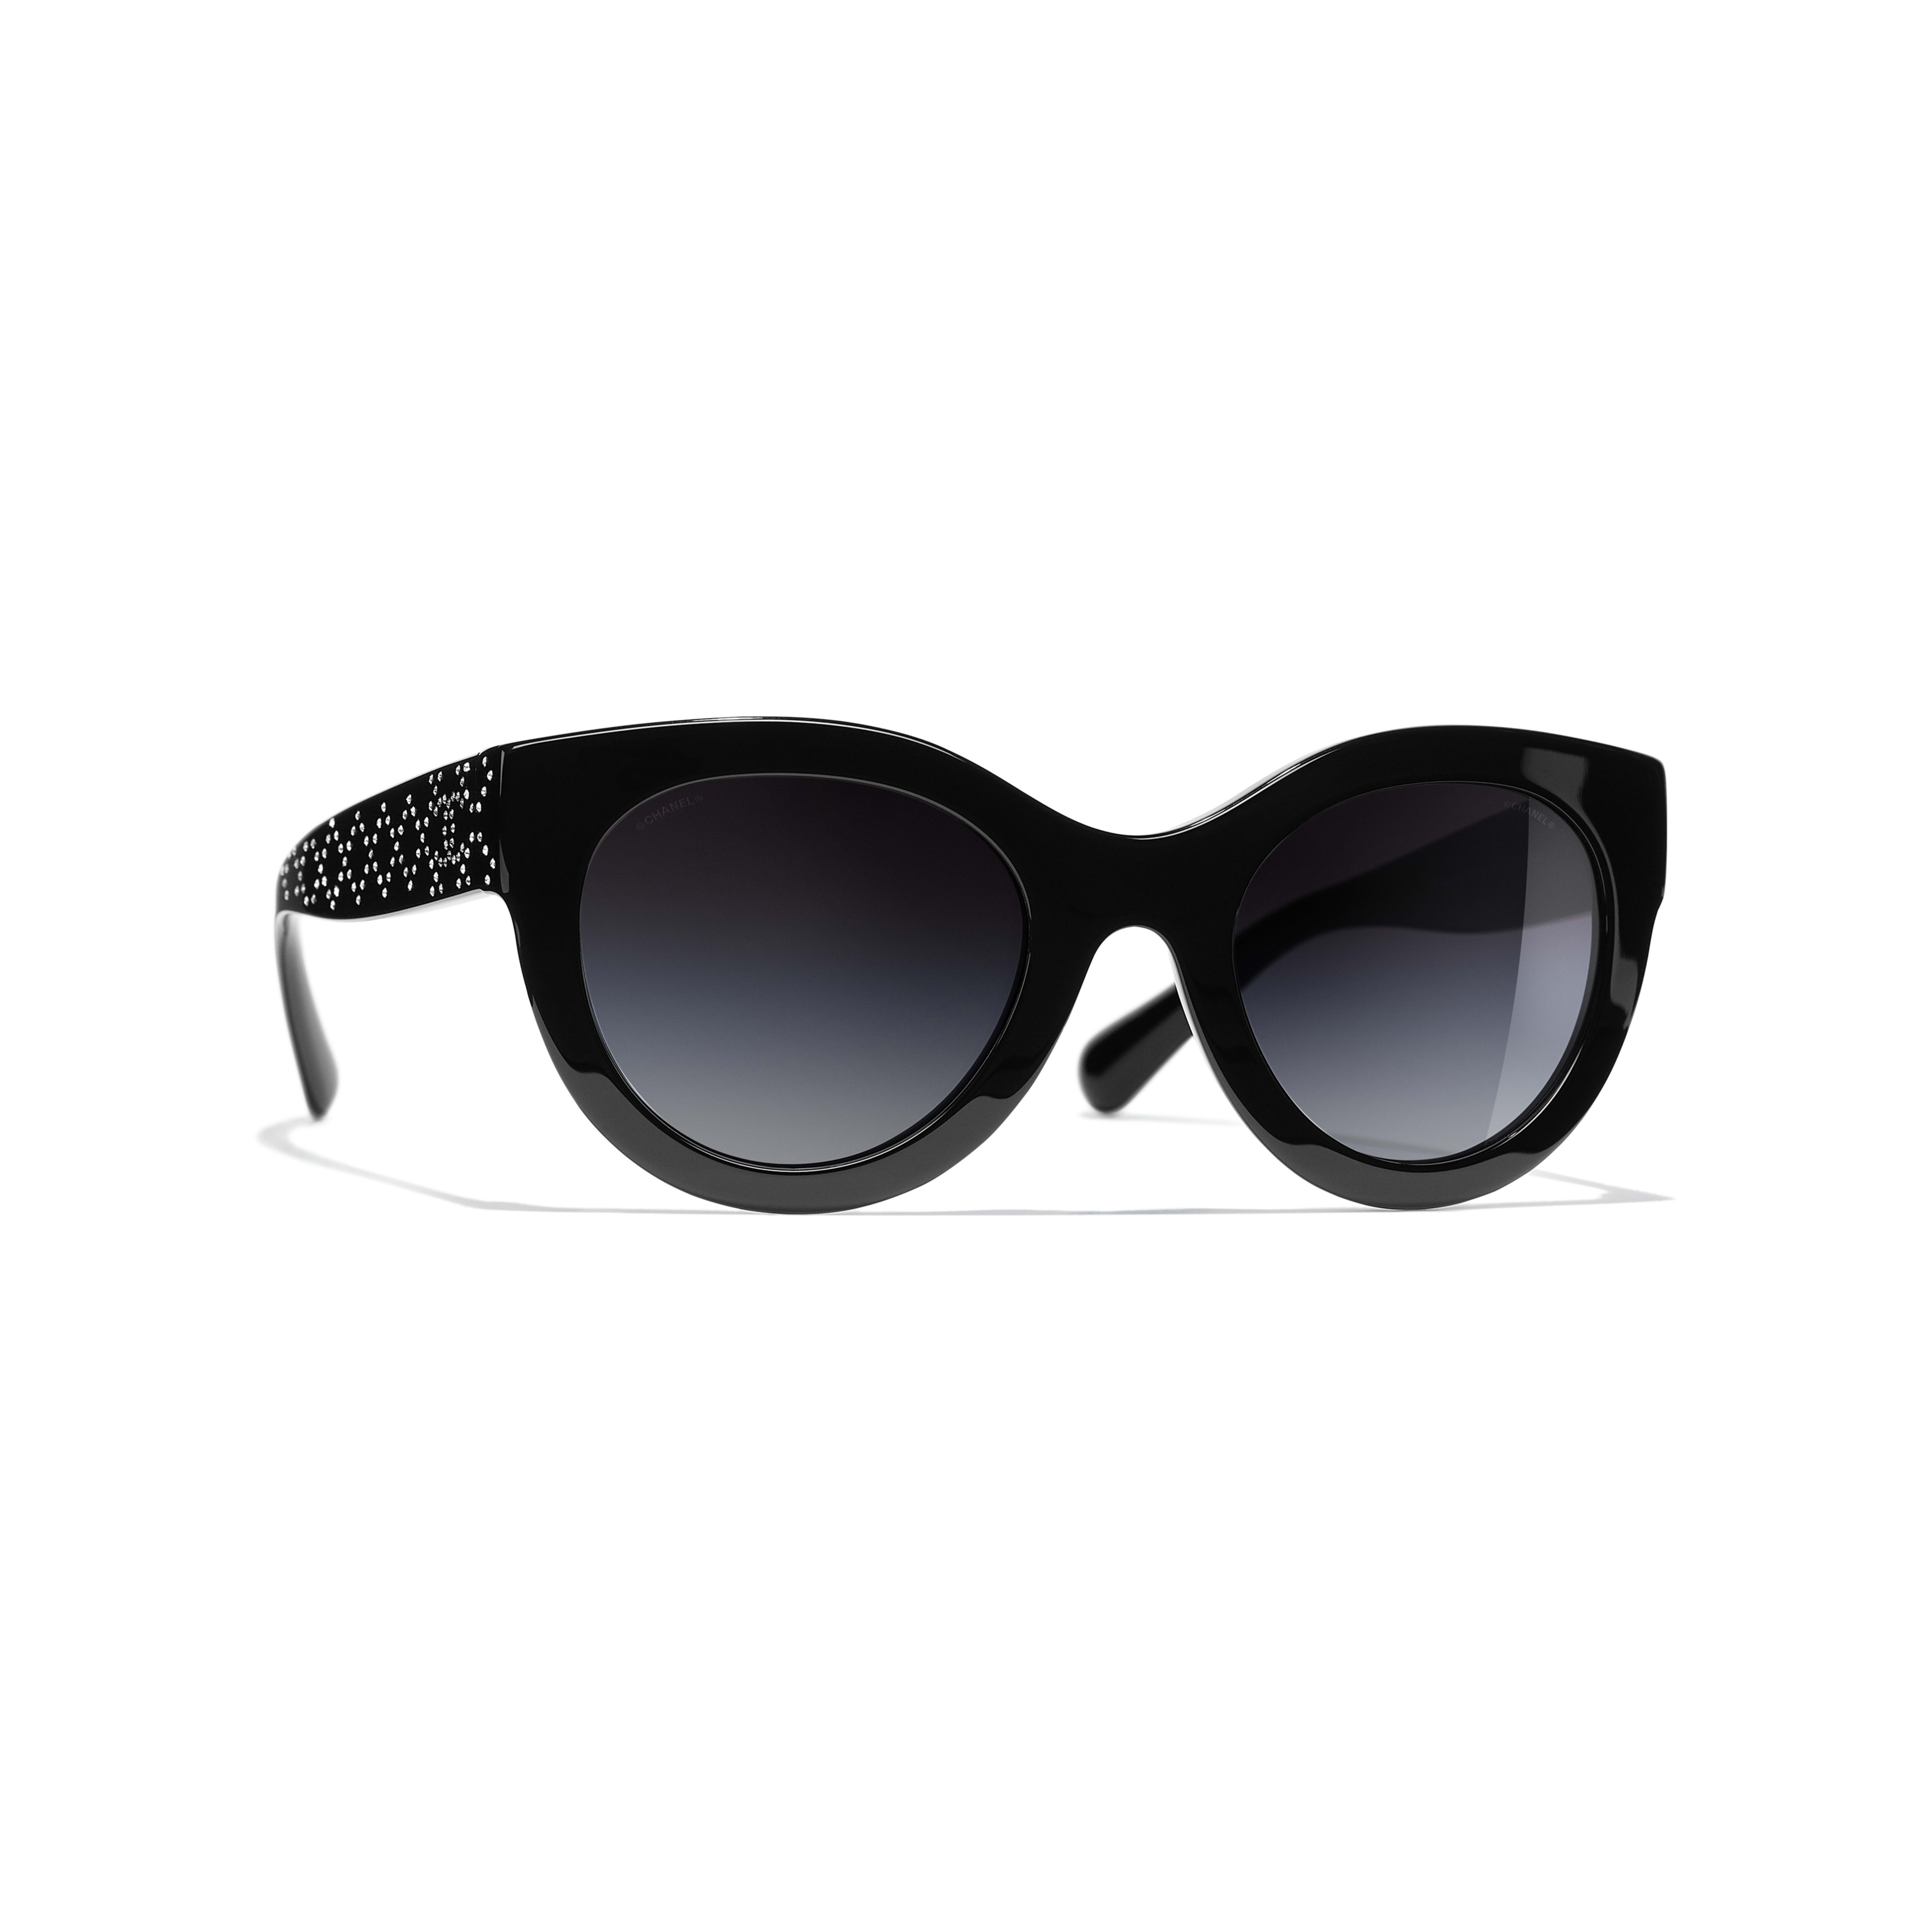 Butterfly Sunglasses - Black - Acetate & Strass - CHANEL - Default view - see standard sized version